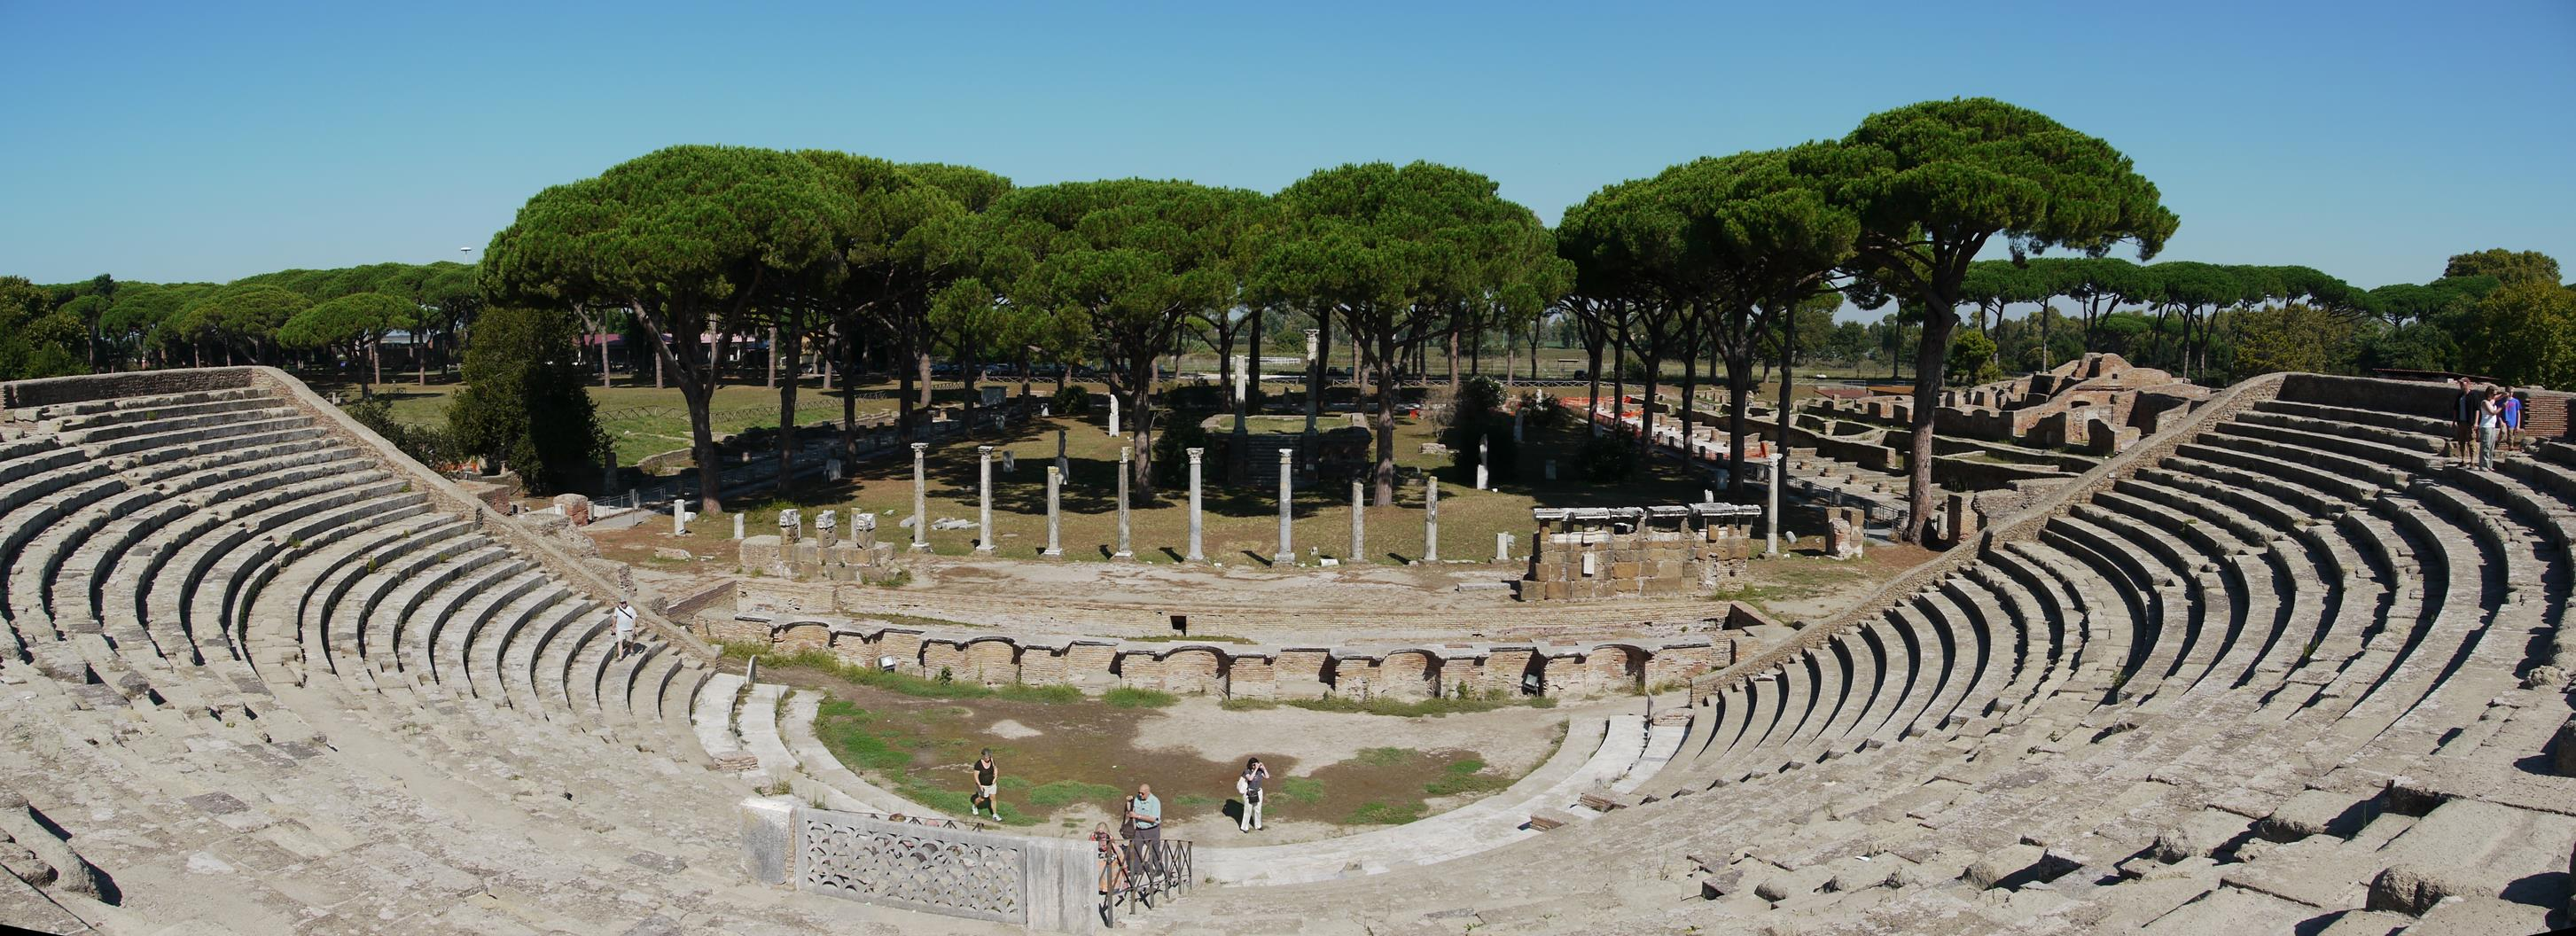 Roman theatre at Ostia Antica, the ancient Roman seaport near Rome